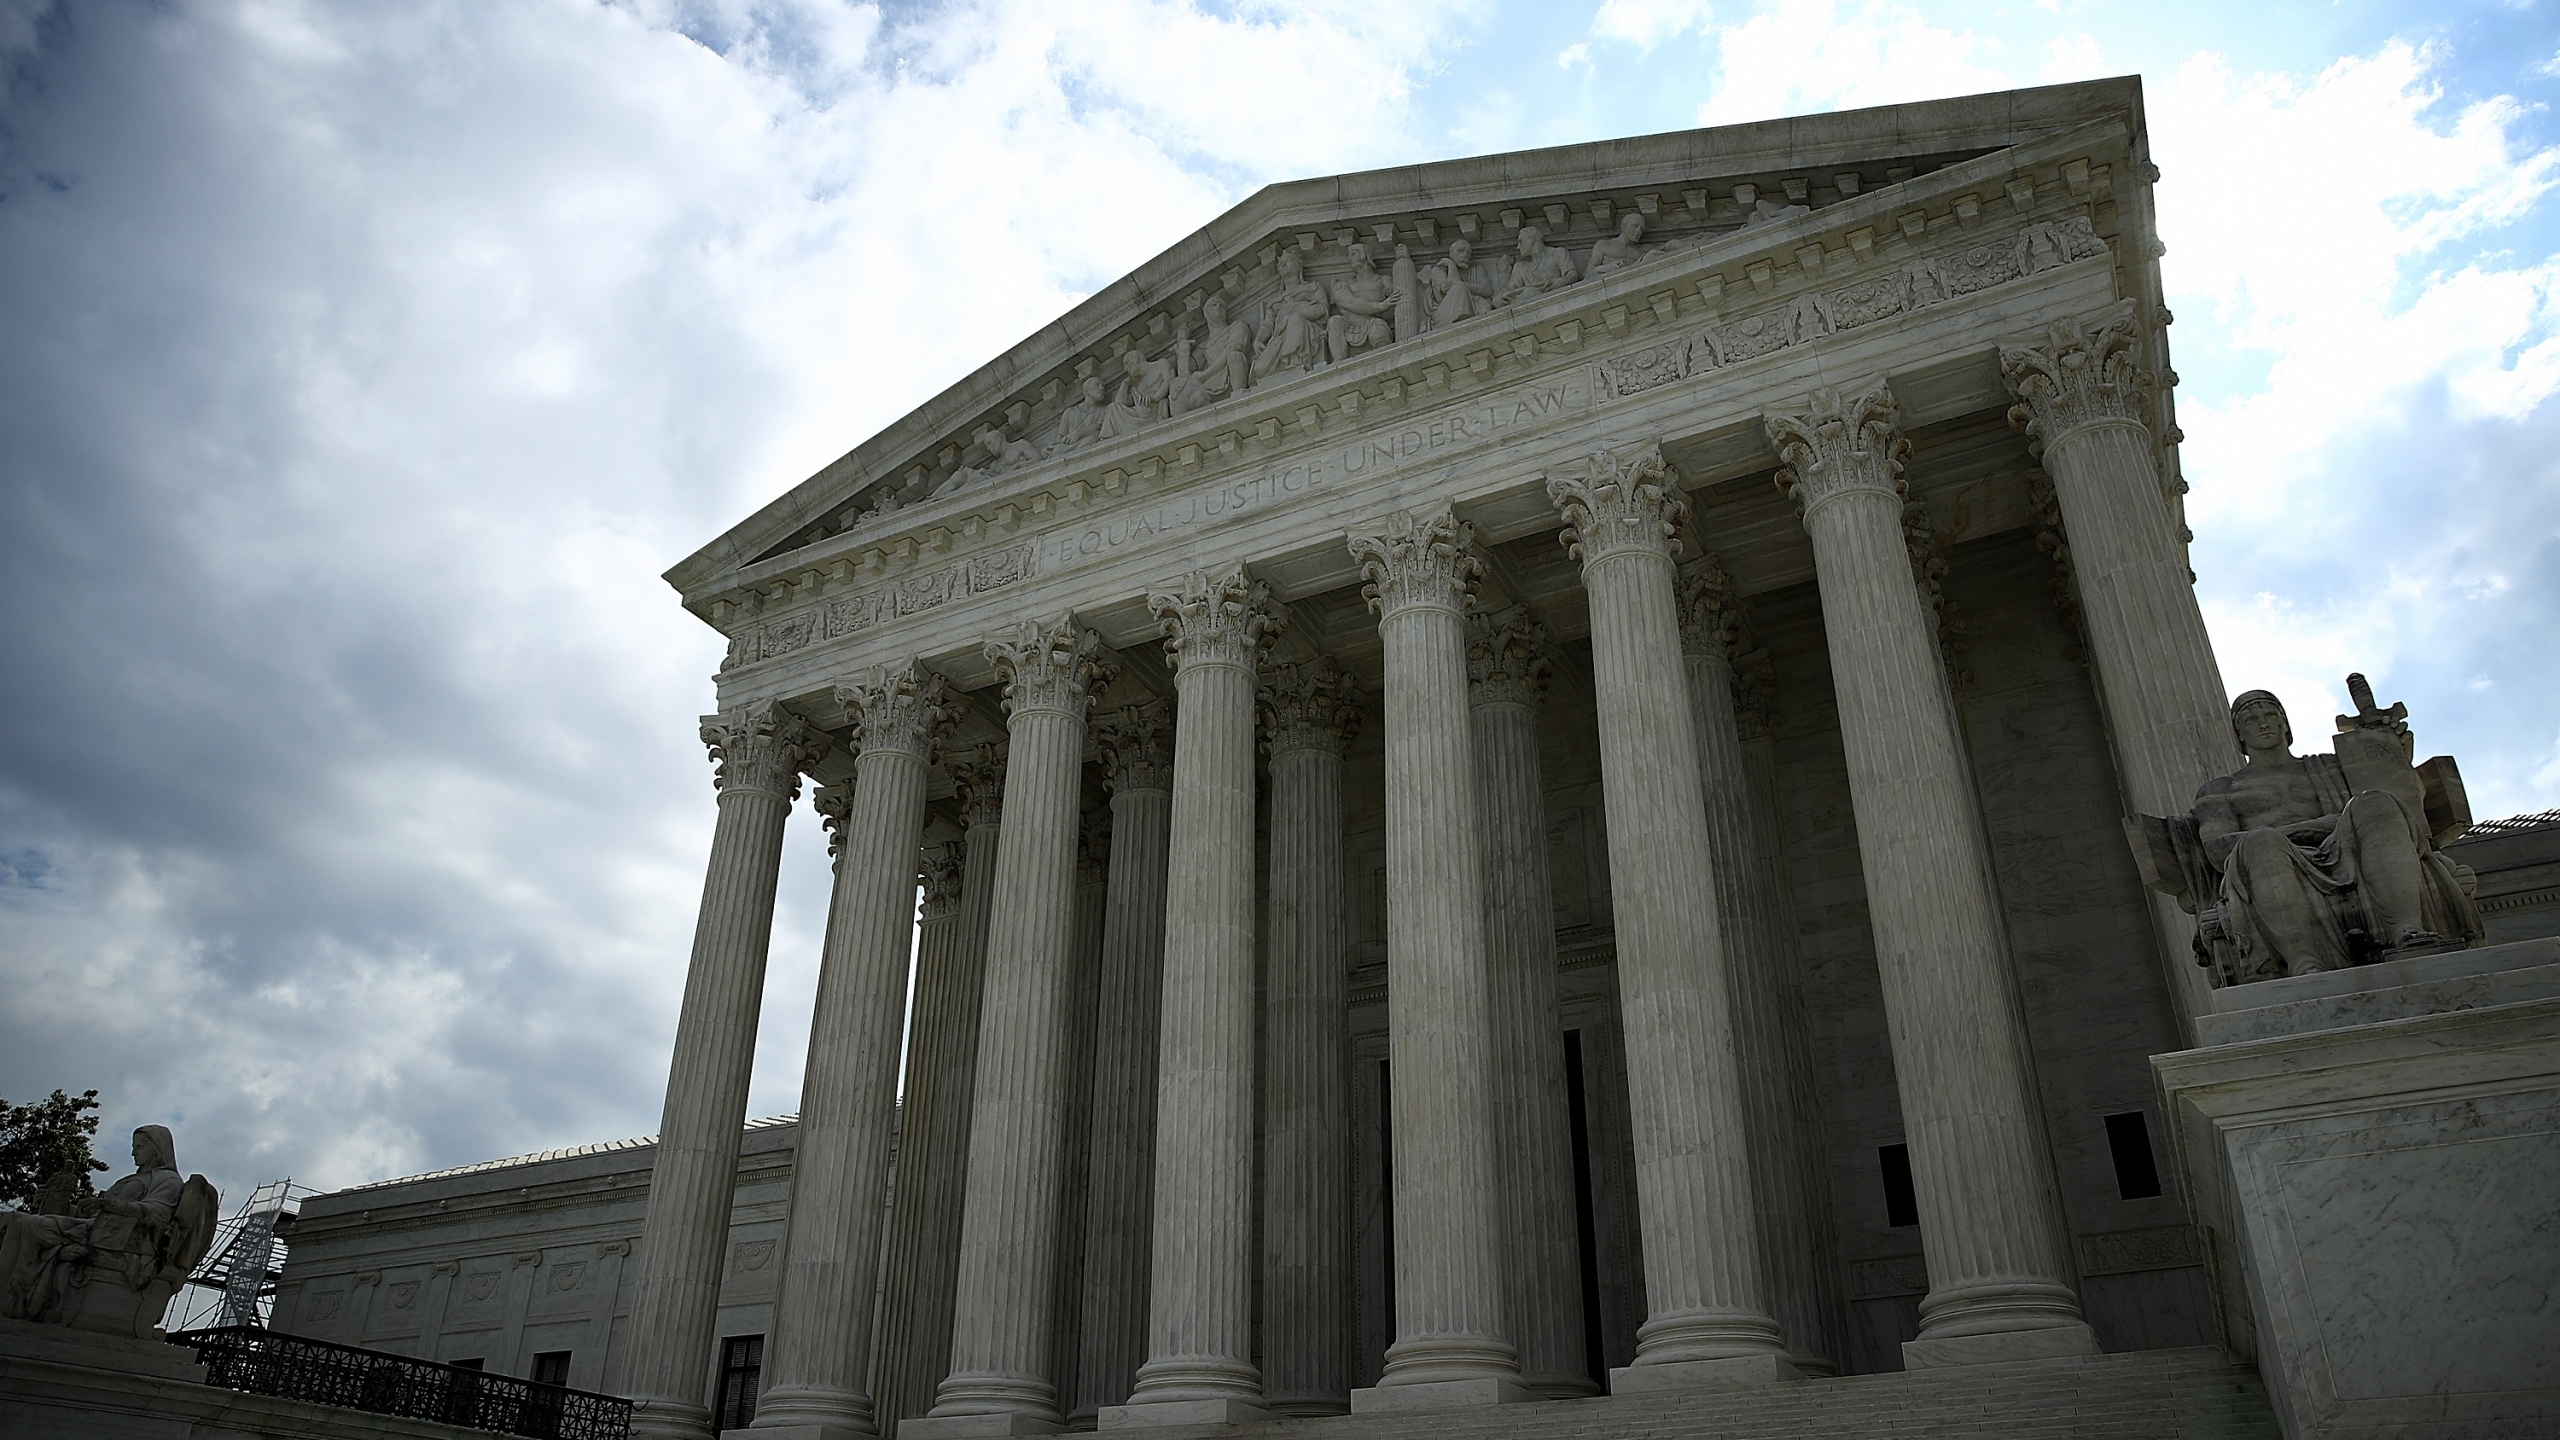 WASHINGTON, DC - MAY 23: The U.S. Supreme Court is shown as the court meets to issue decisions May 23, 2016 in Washington, DC. (Photo by Win McNamee/Getty Images)